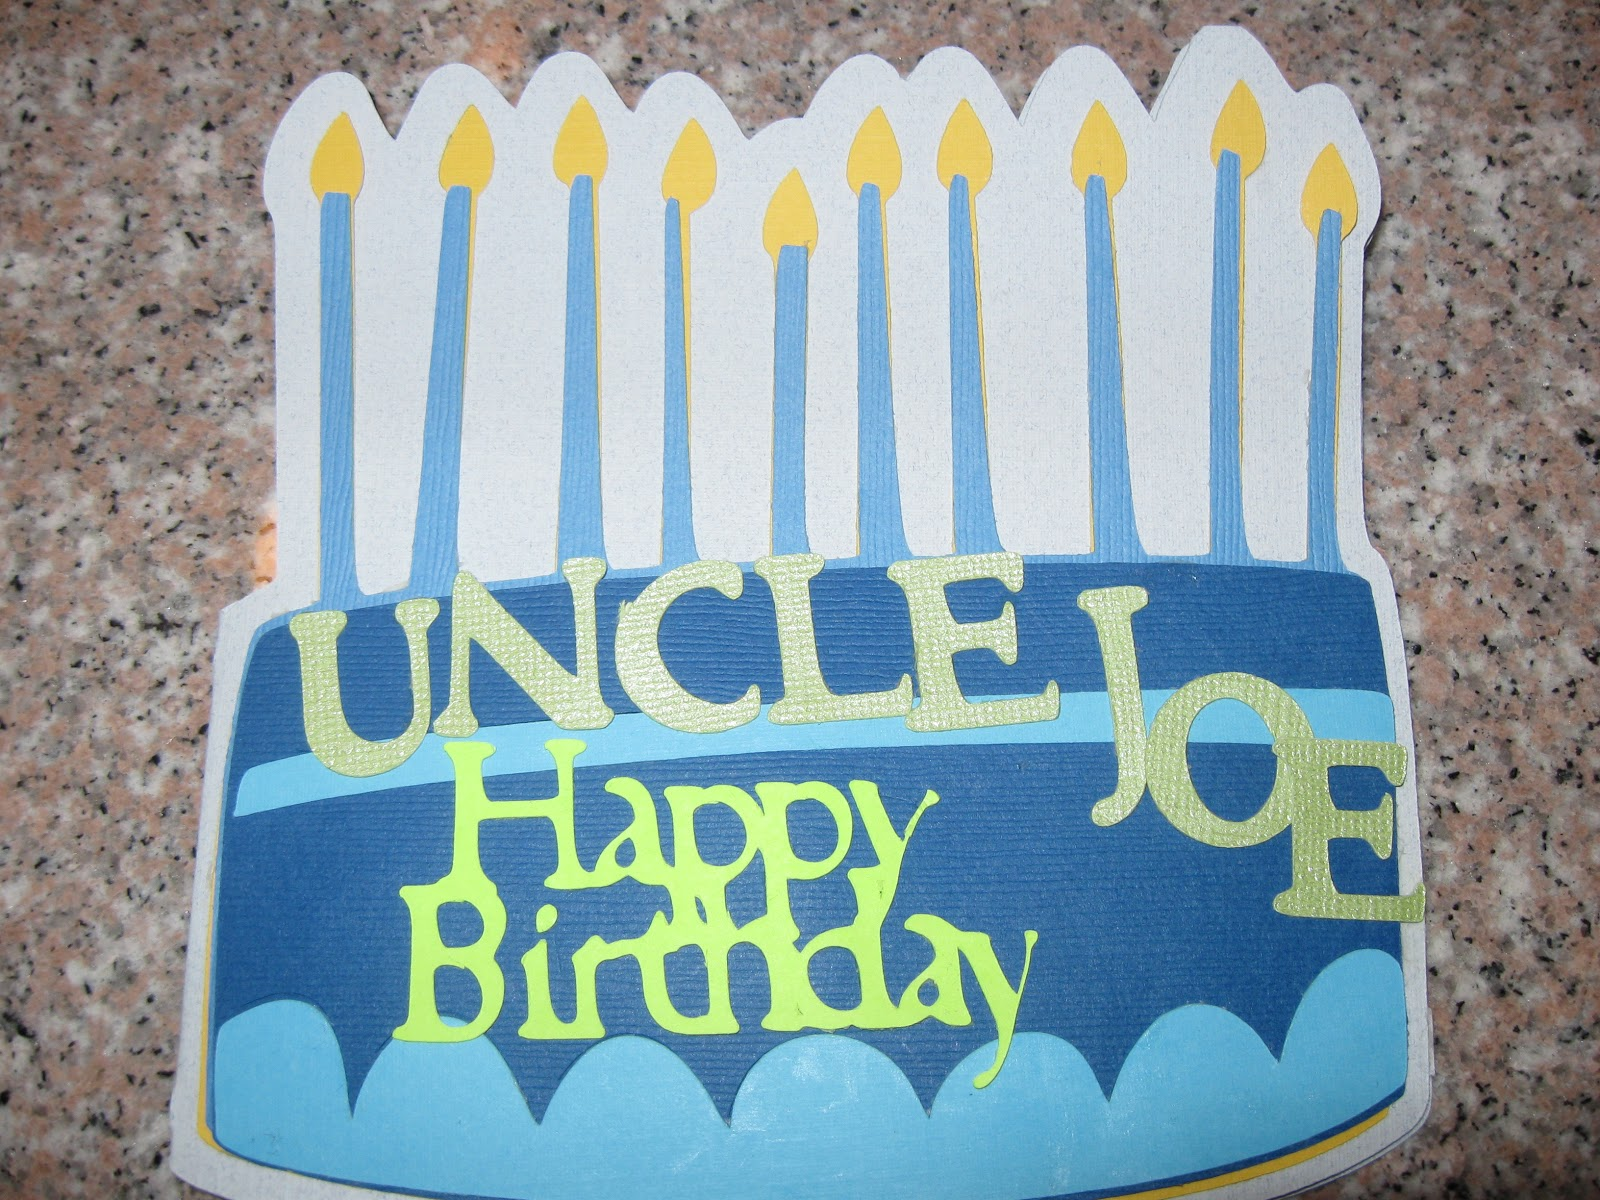 happy birthday uncle joe ; IMG_2119